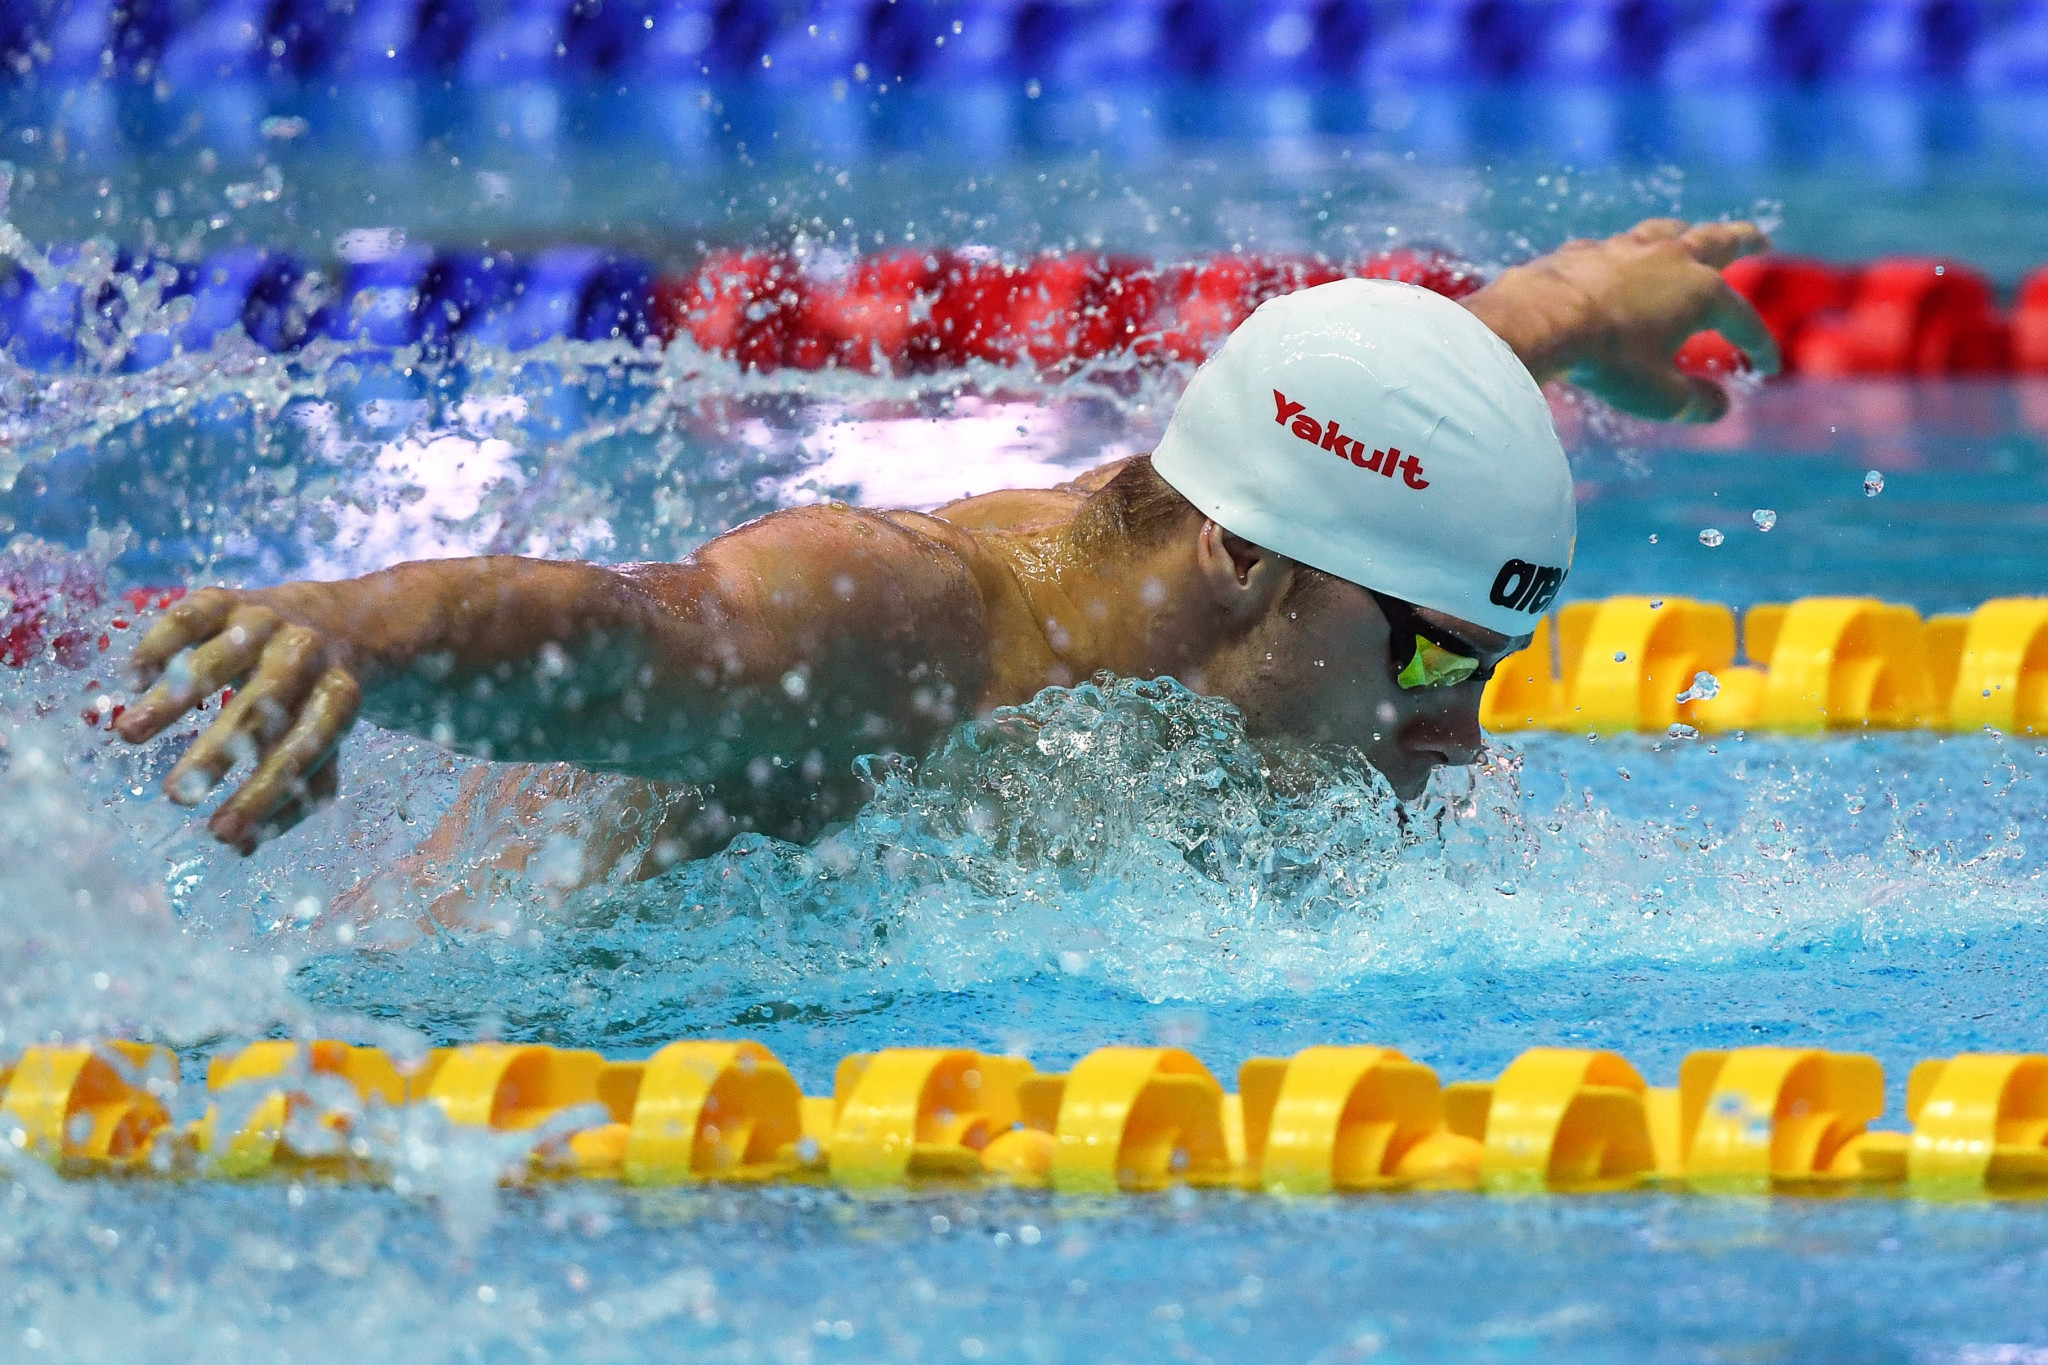 The Hungarian has been competing at the FINA World Aquatics Championships in Gwangju ©Getty Images